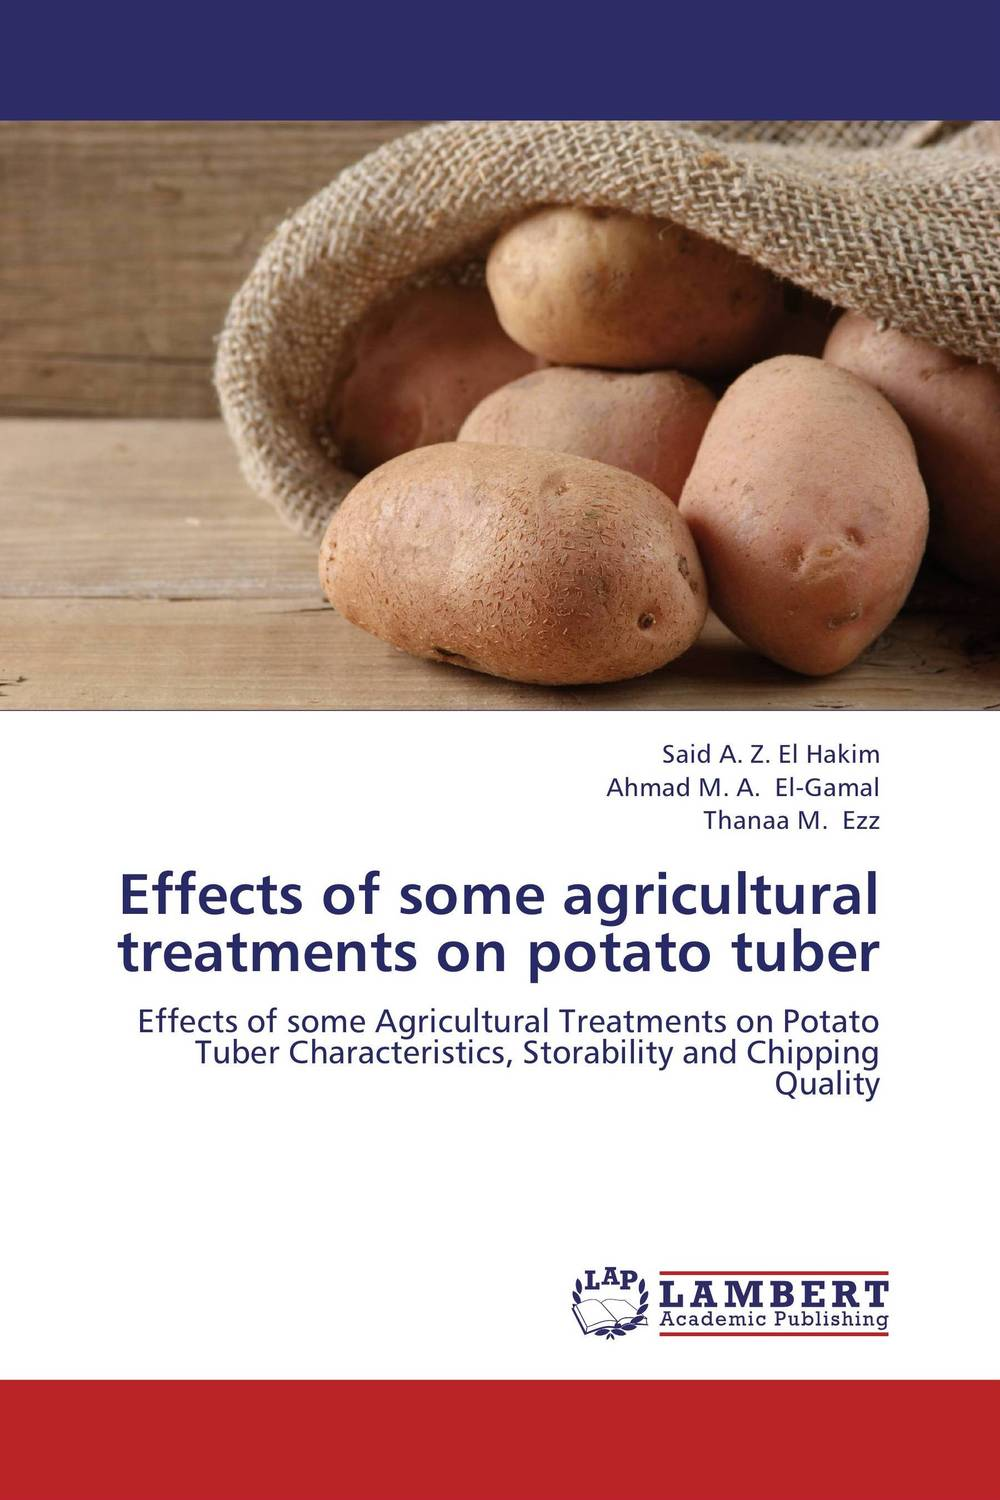 Effects of some agricultural treatments on potato tuber cold storage accessibility and agricultural production by smallholders